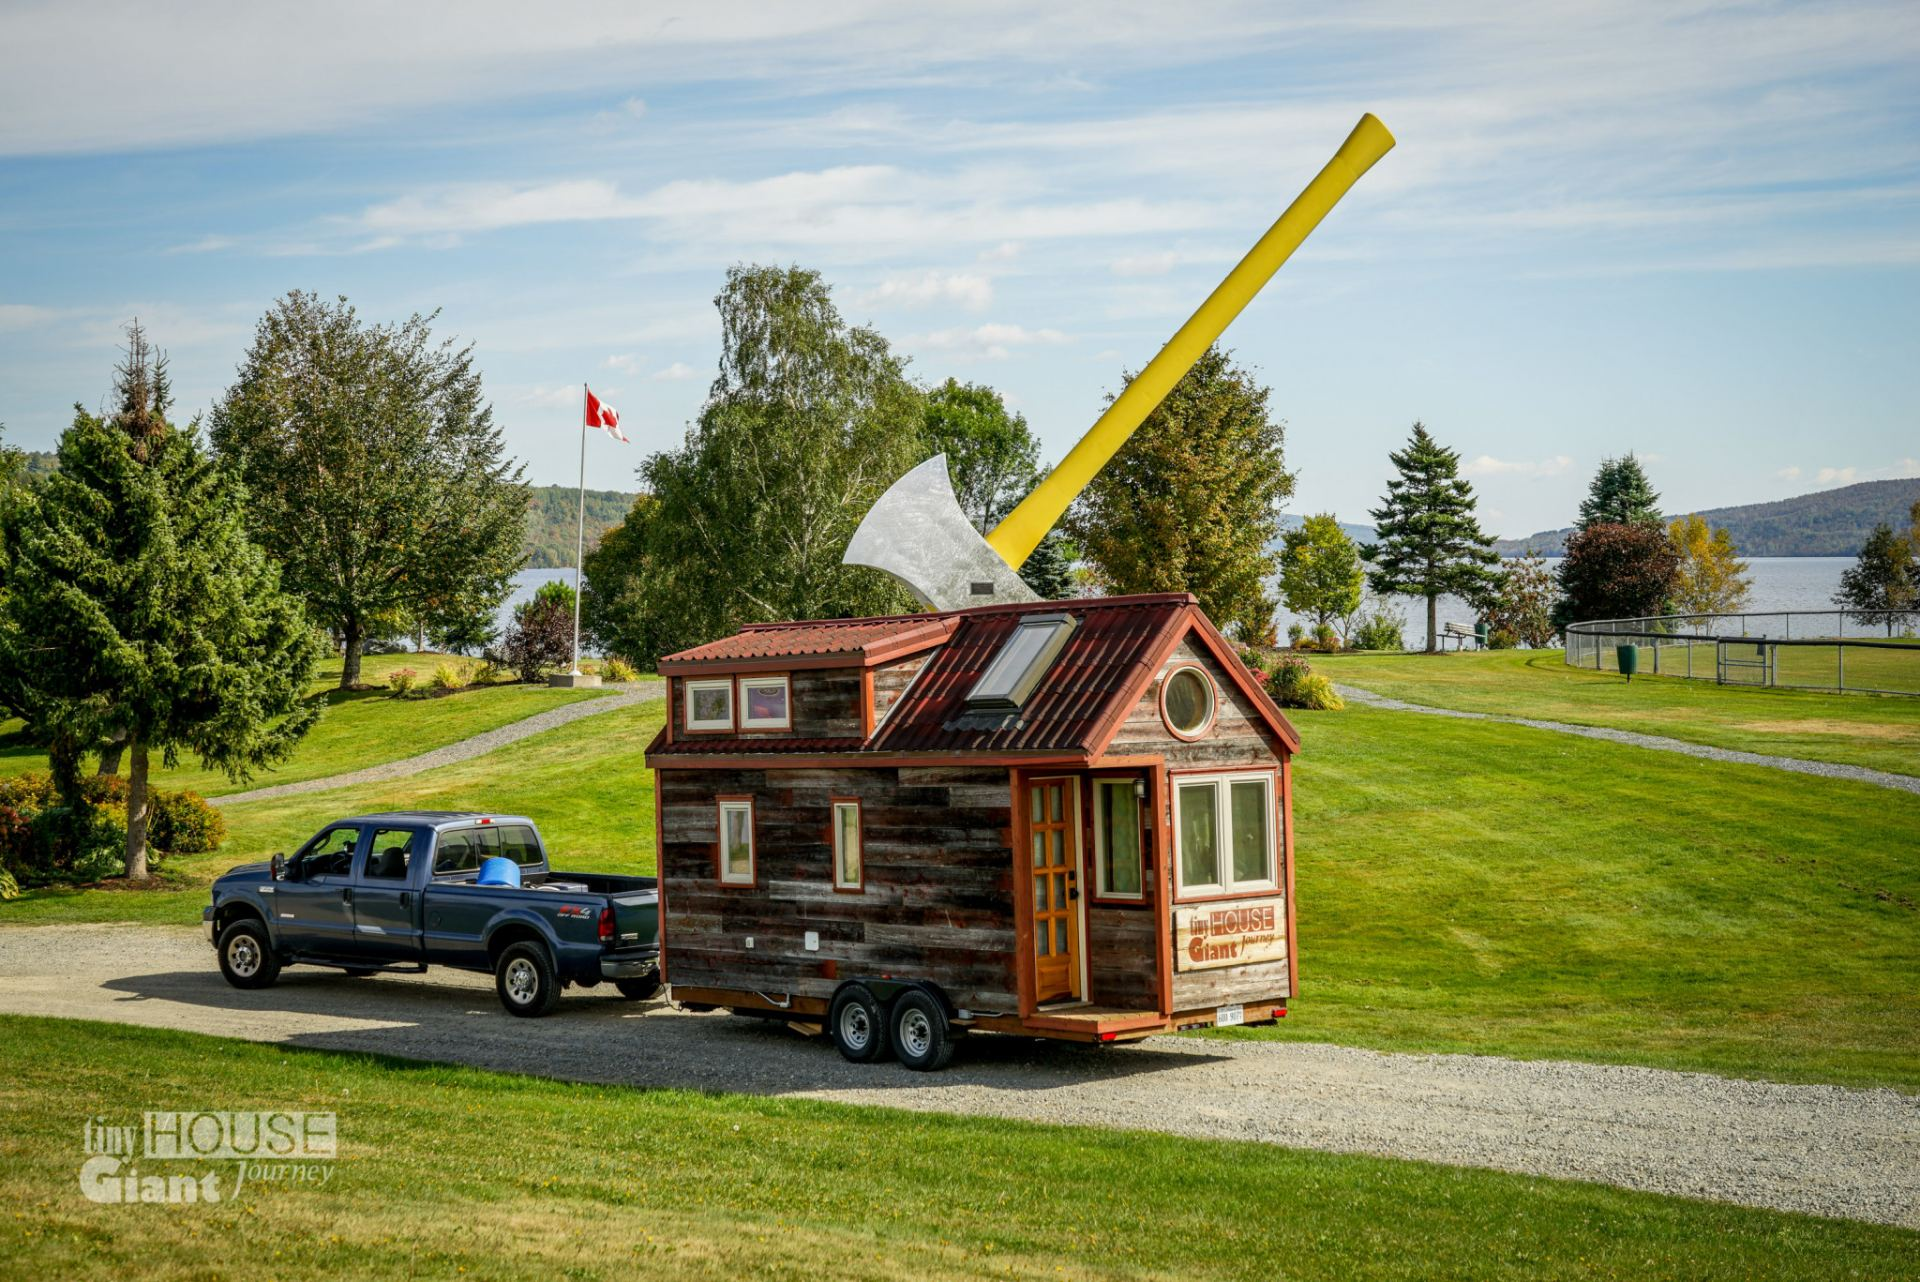 worlds largest axe new brunswick - Largest Tiny House On Wheels